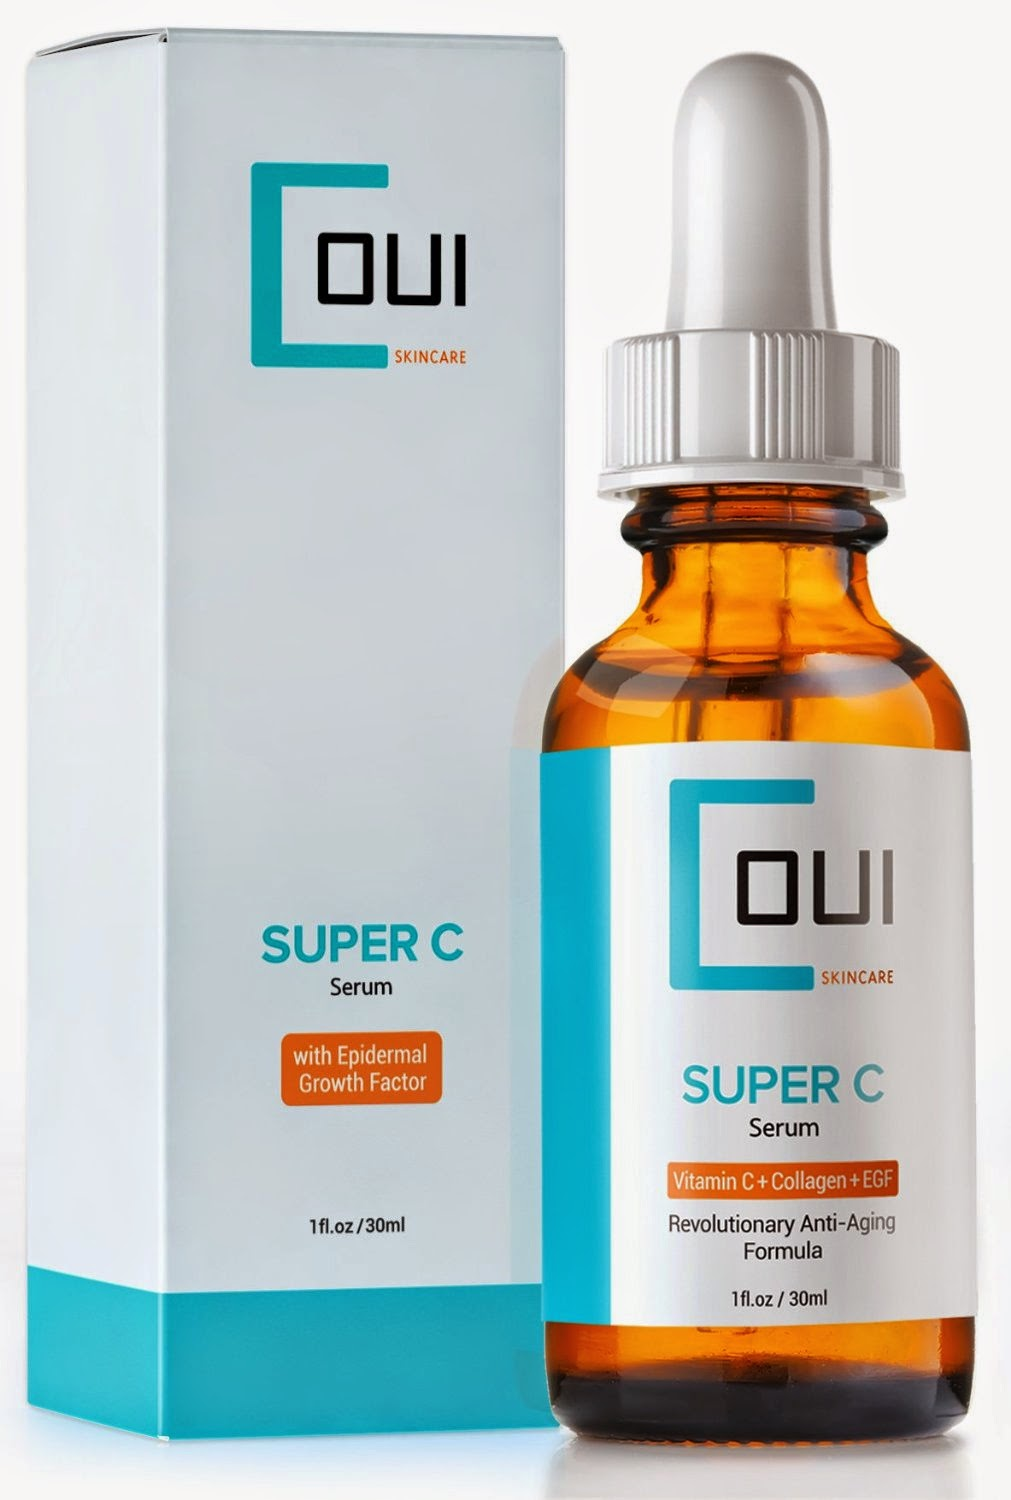 COUI Skincare Super C Serum